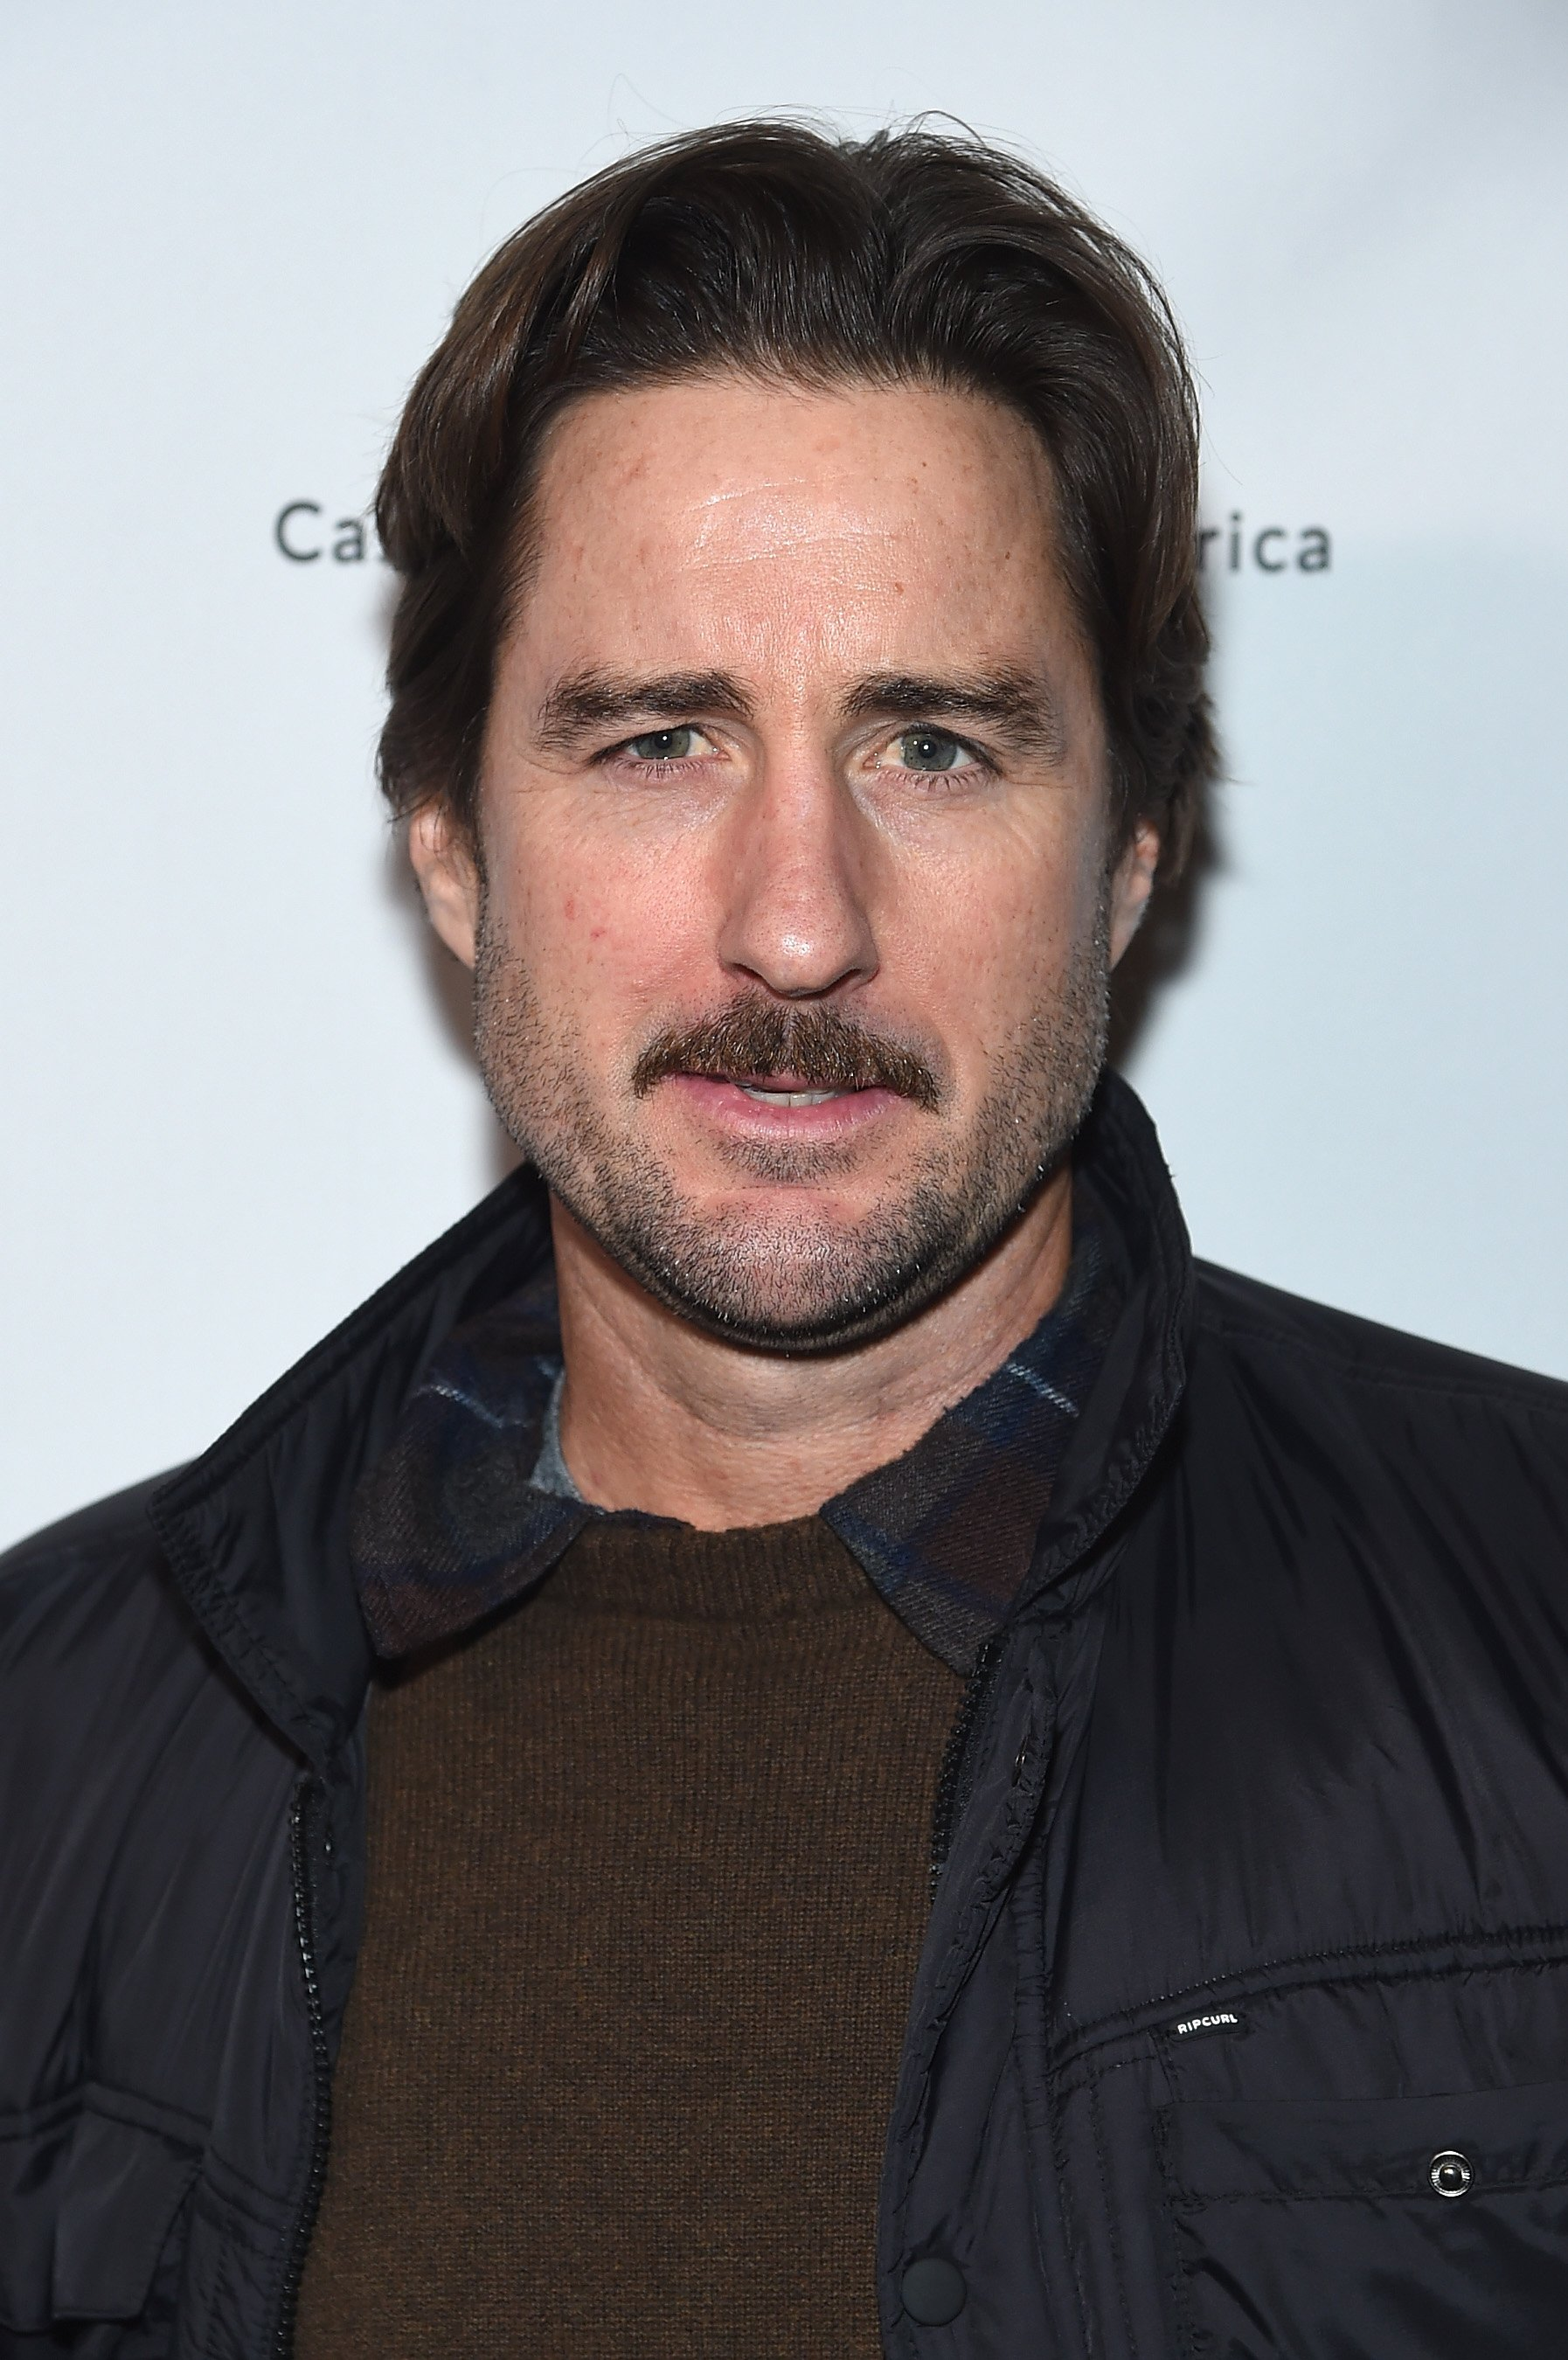 Image Credits: Getty Images / Jamie McCarthy | Luke Wilson attends the Casting Society of America's 33rd annual Artios Awards at Stage 48 on January 18, 2018 in New York City.